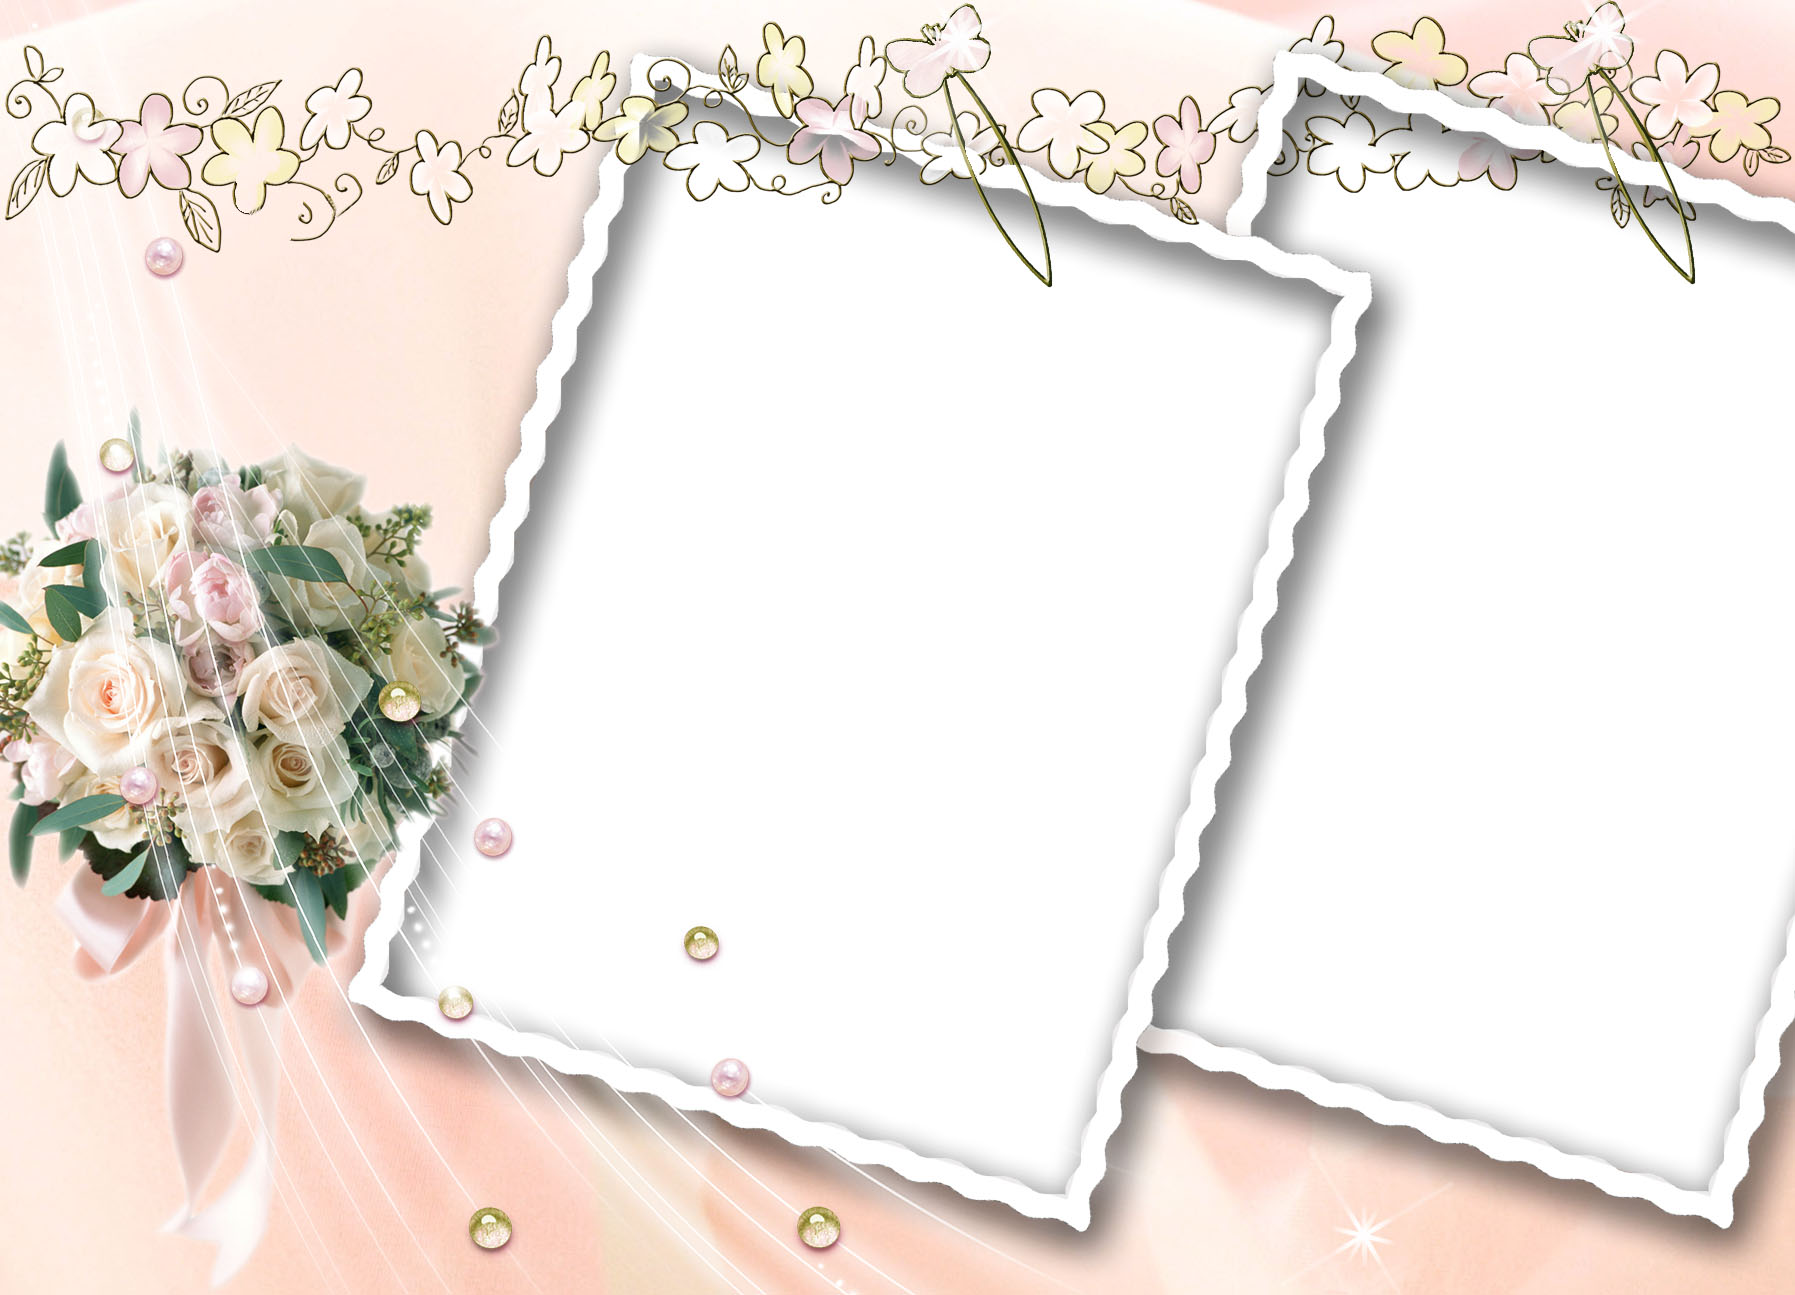 12 Free PSD Photoshop Frames Images